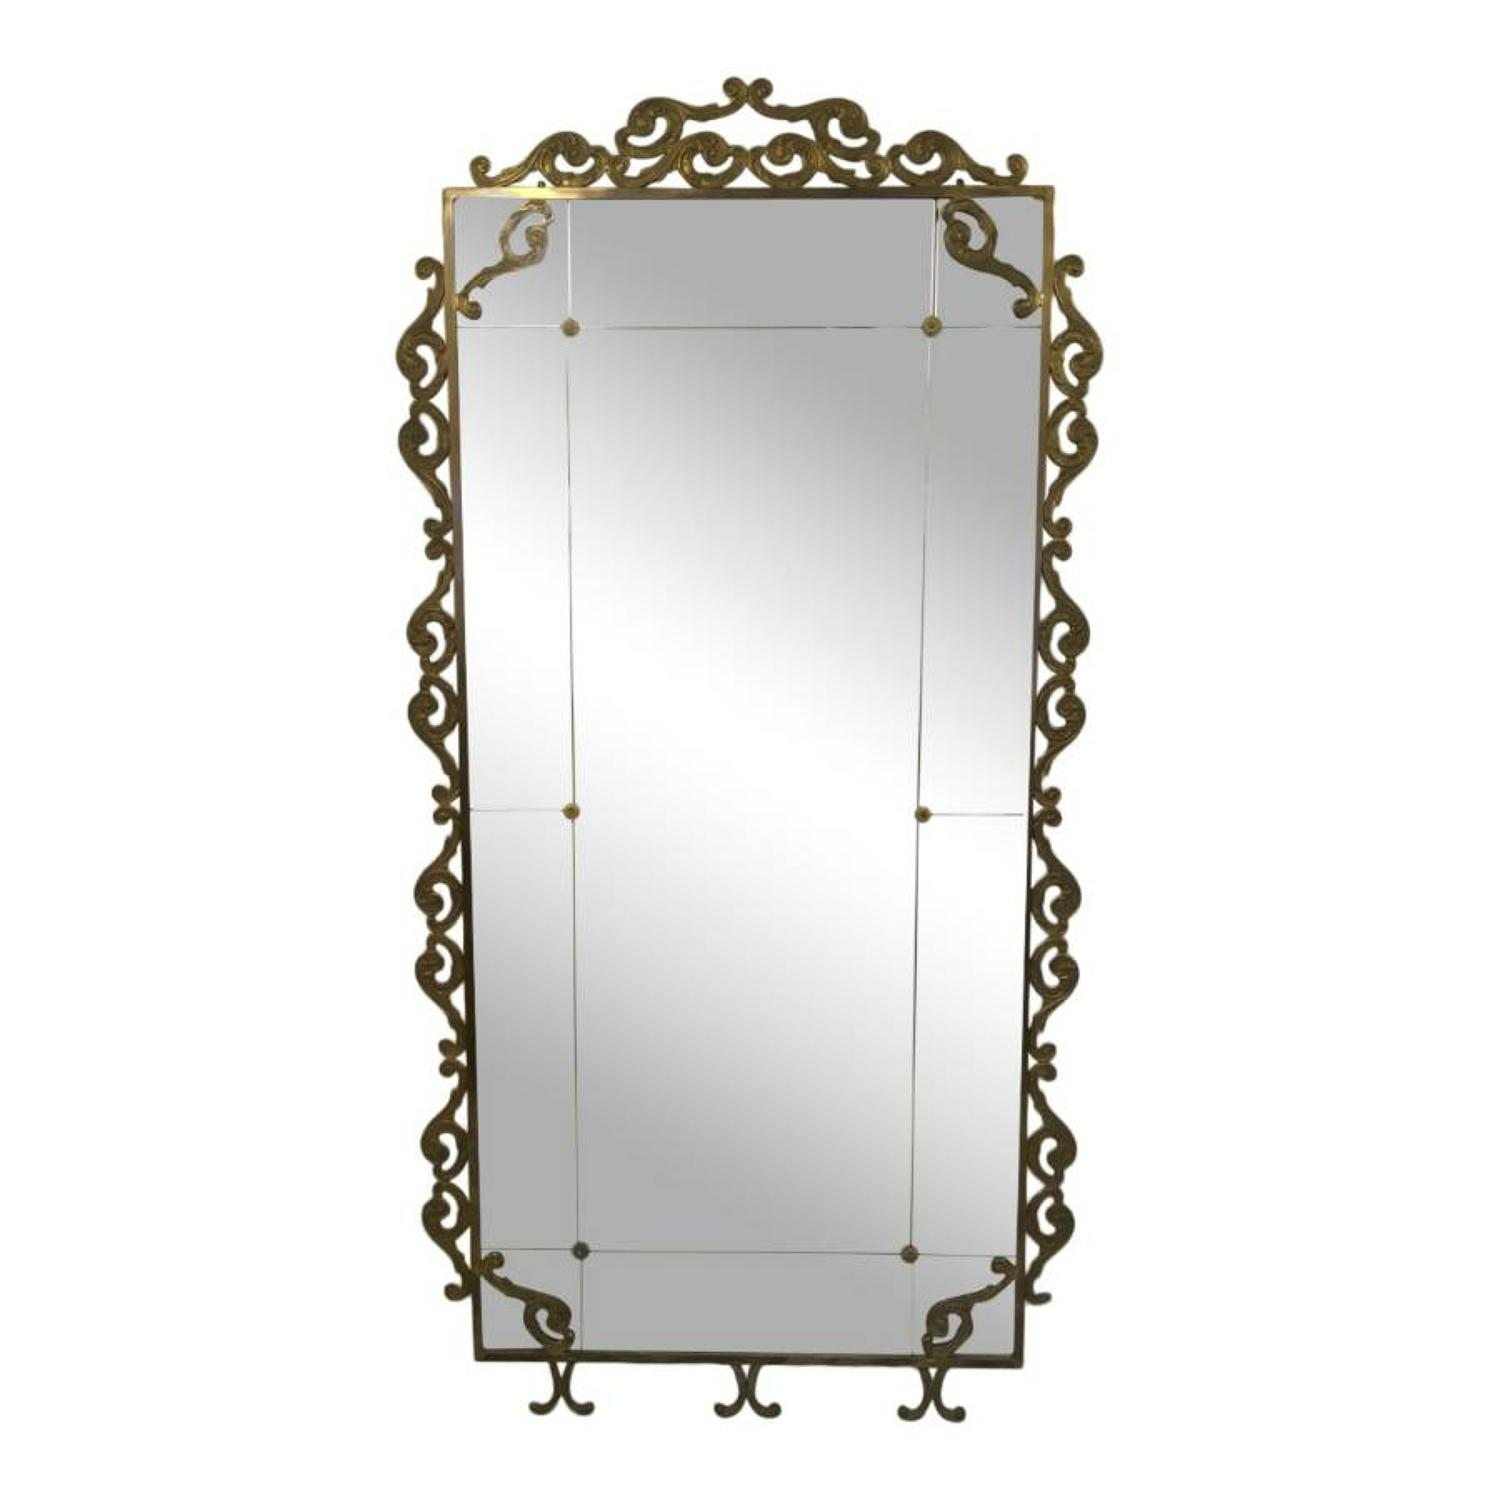 Large 1940s Italian brass floor standing mirror